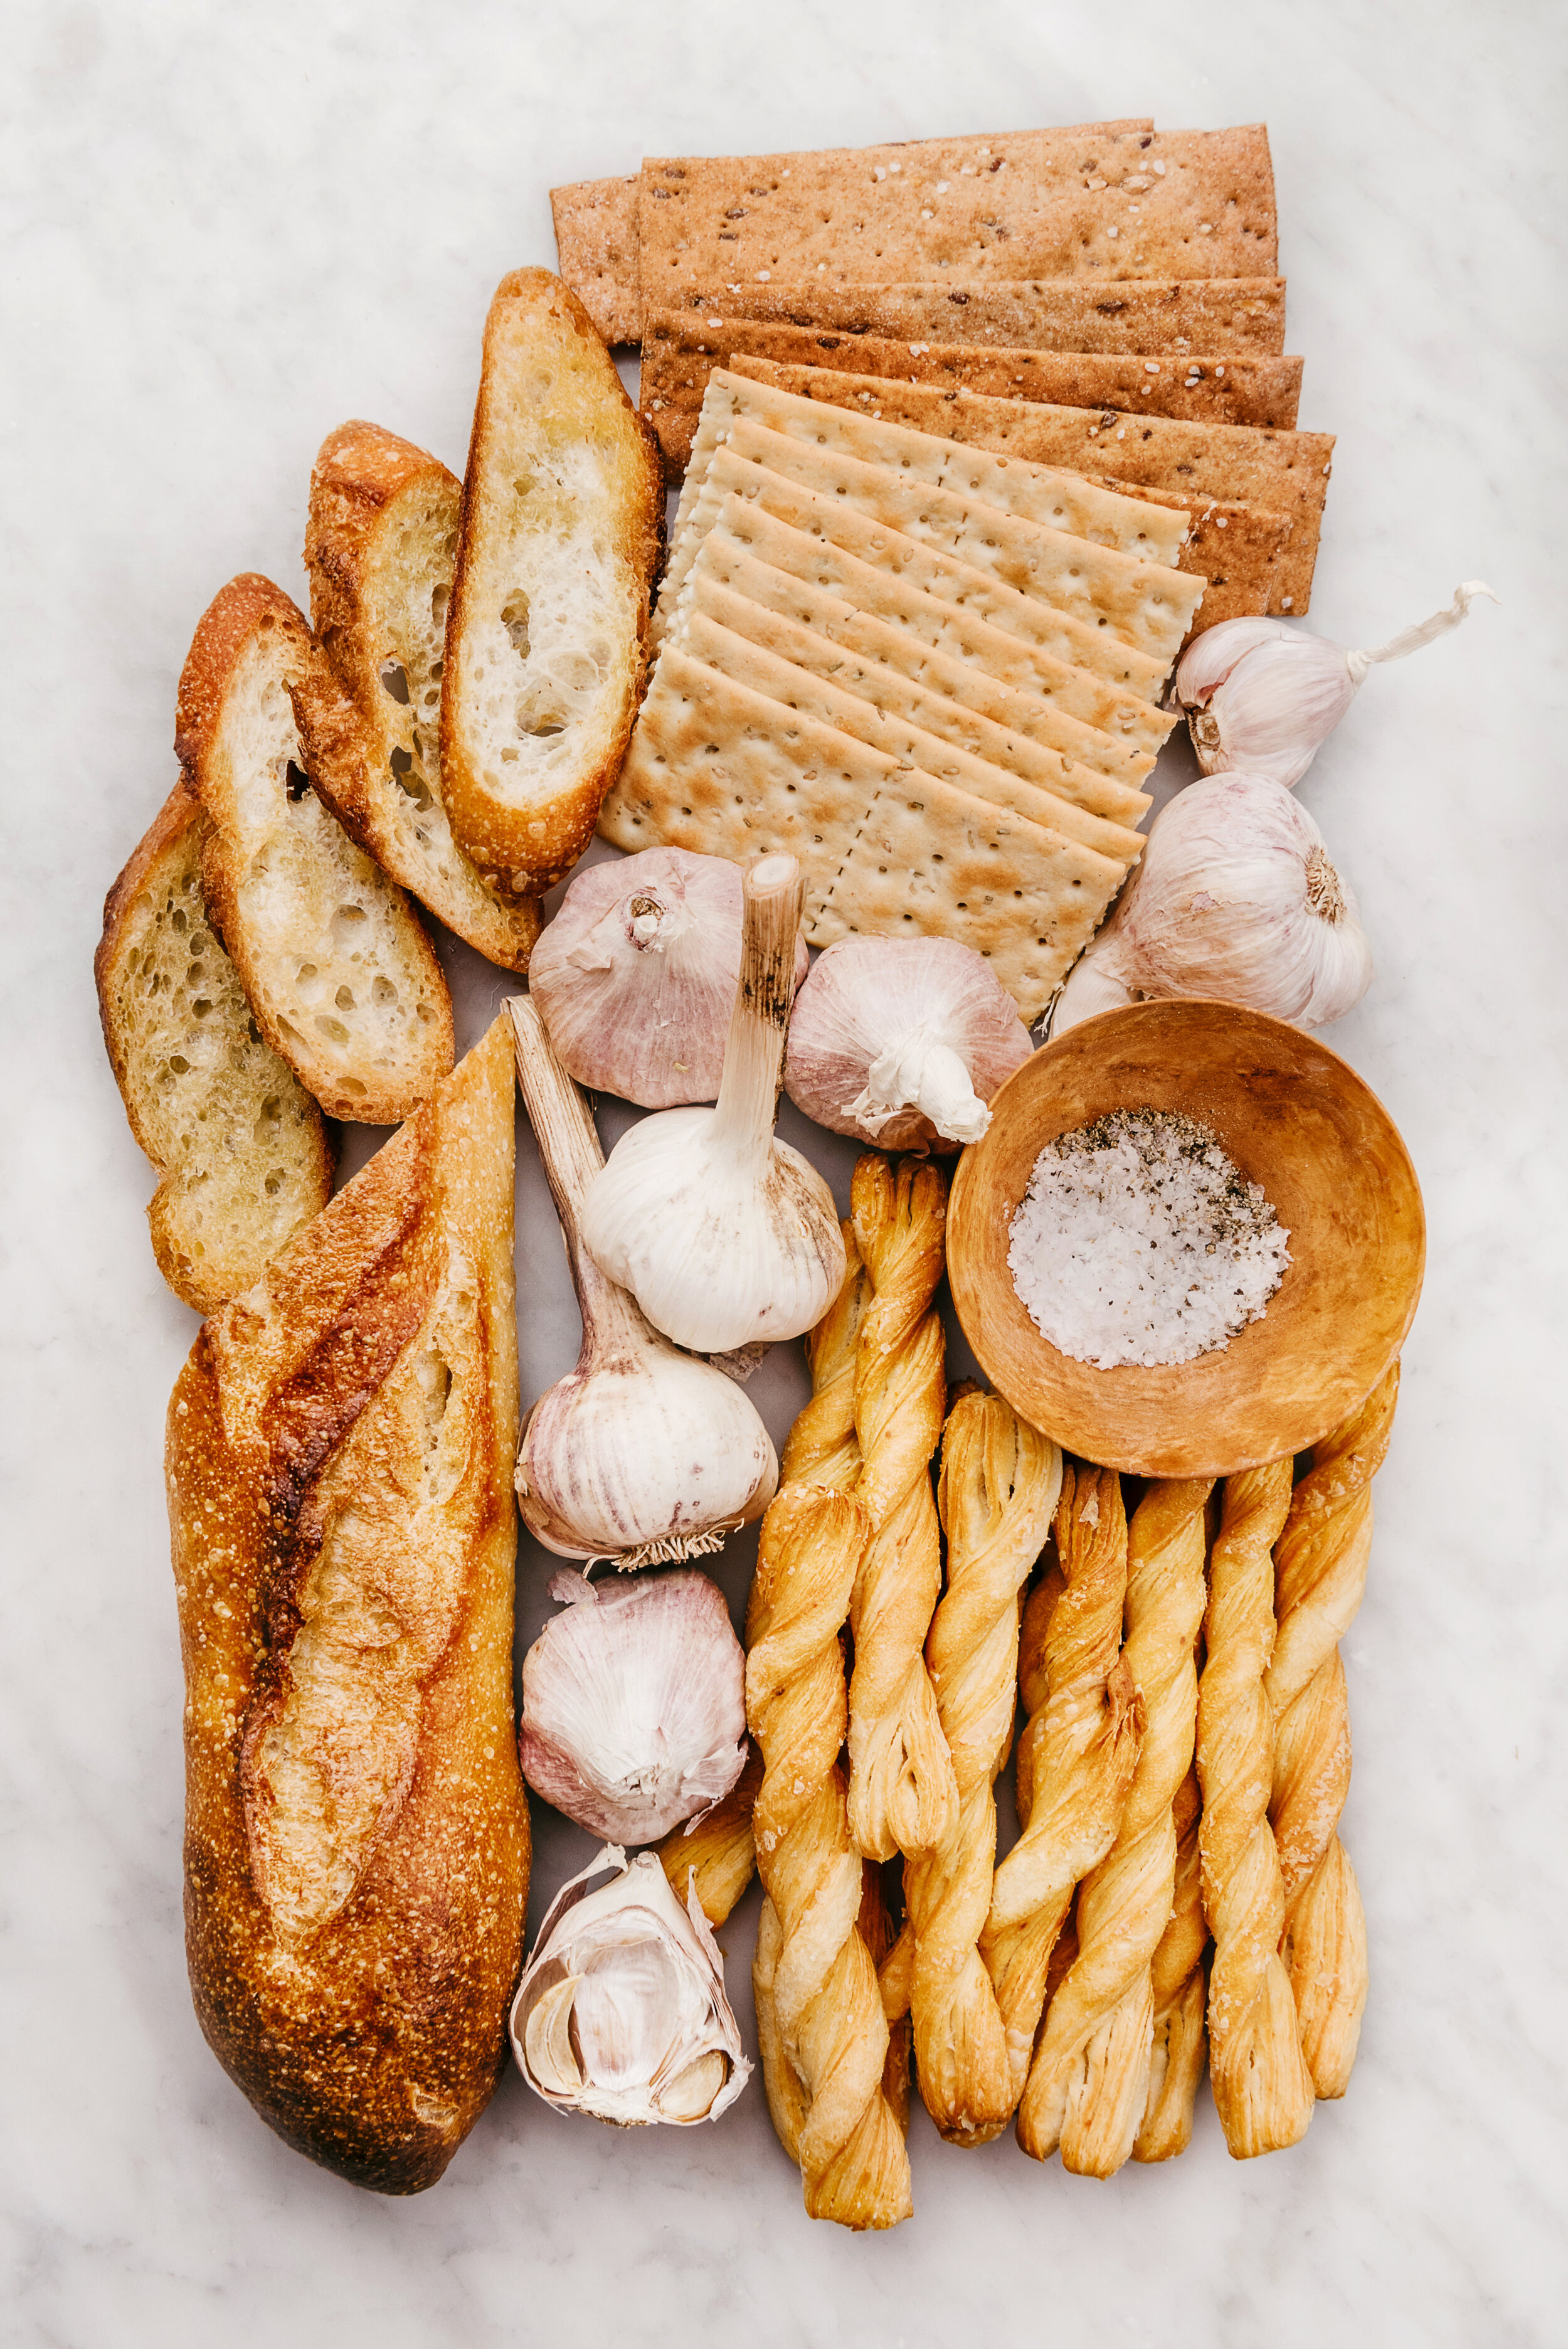 CRACKER AND BREAD OMBRE #ombre #cheeseboard #pannetone #breadsticks